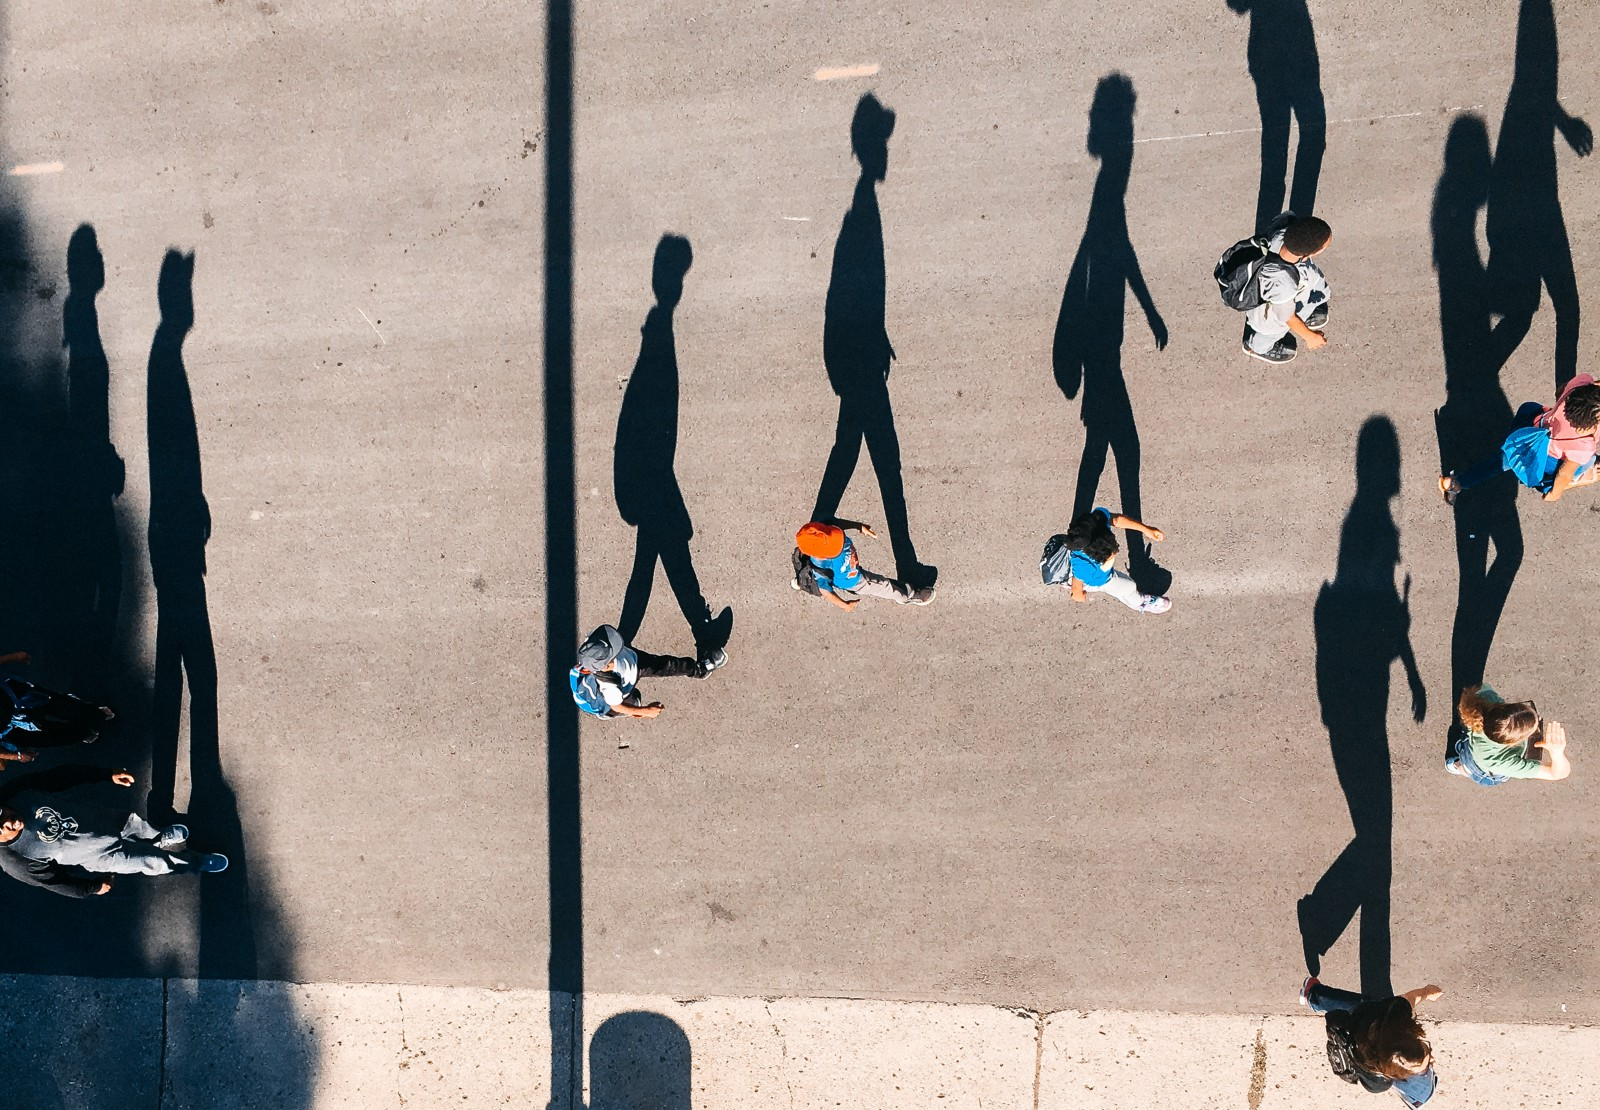 This image is meant to describe conformity. As the article leads you on a path of working out the identity you want and choosing that. The picture shows a top-down view (probably from a drone) of a stream of people walking left to right. The sun must be low as their shadows spread out beside them. It appears as a two dimensional image of shadows walking  in a line.